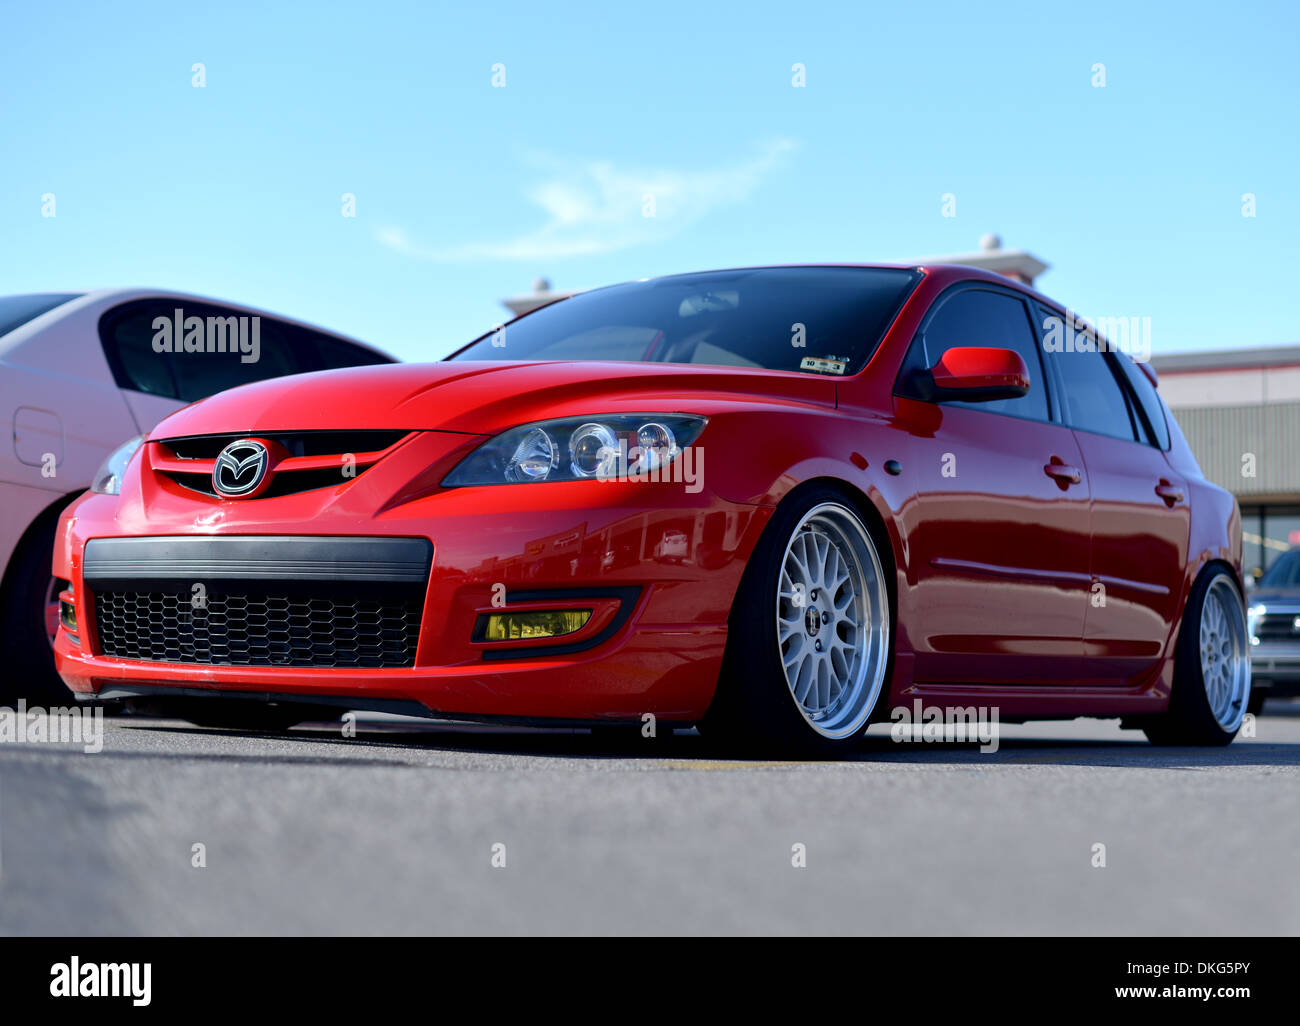 Heavily Lowered Mazda 3 Car Modified On Large Alloy